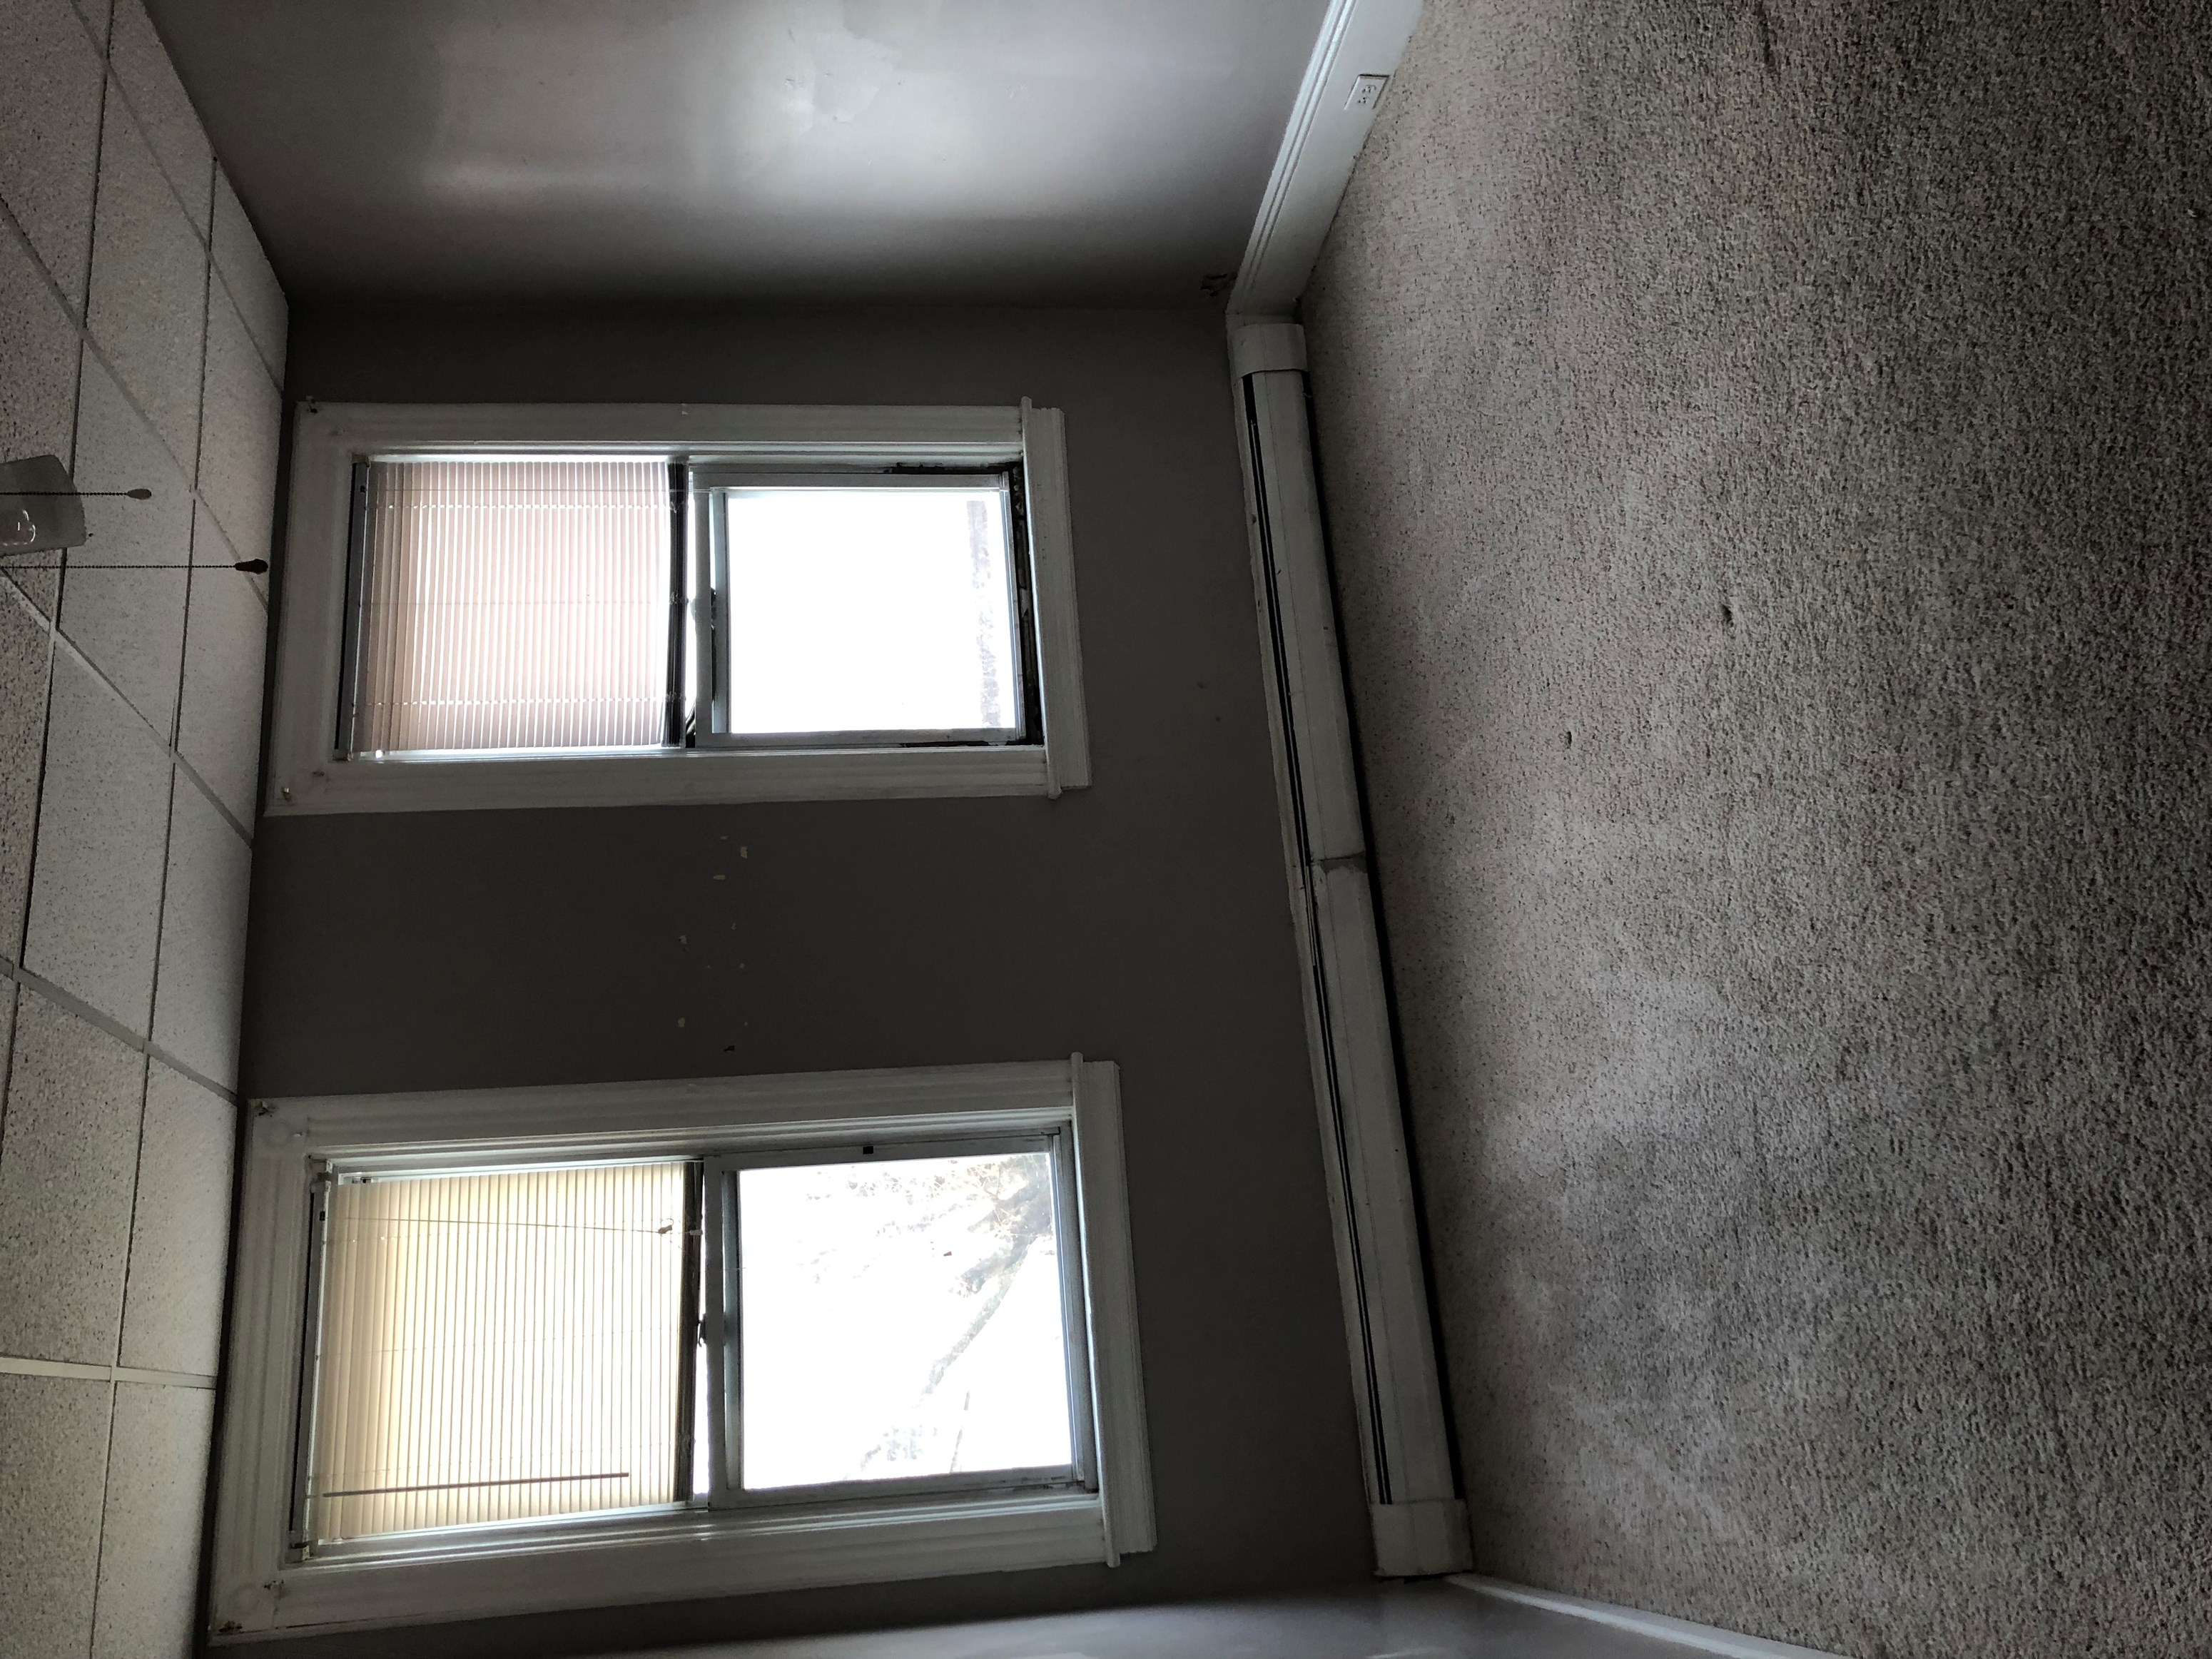 4 Bedroom House In Jersey City Easy Nyc Access